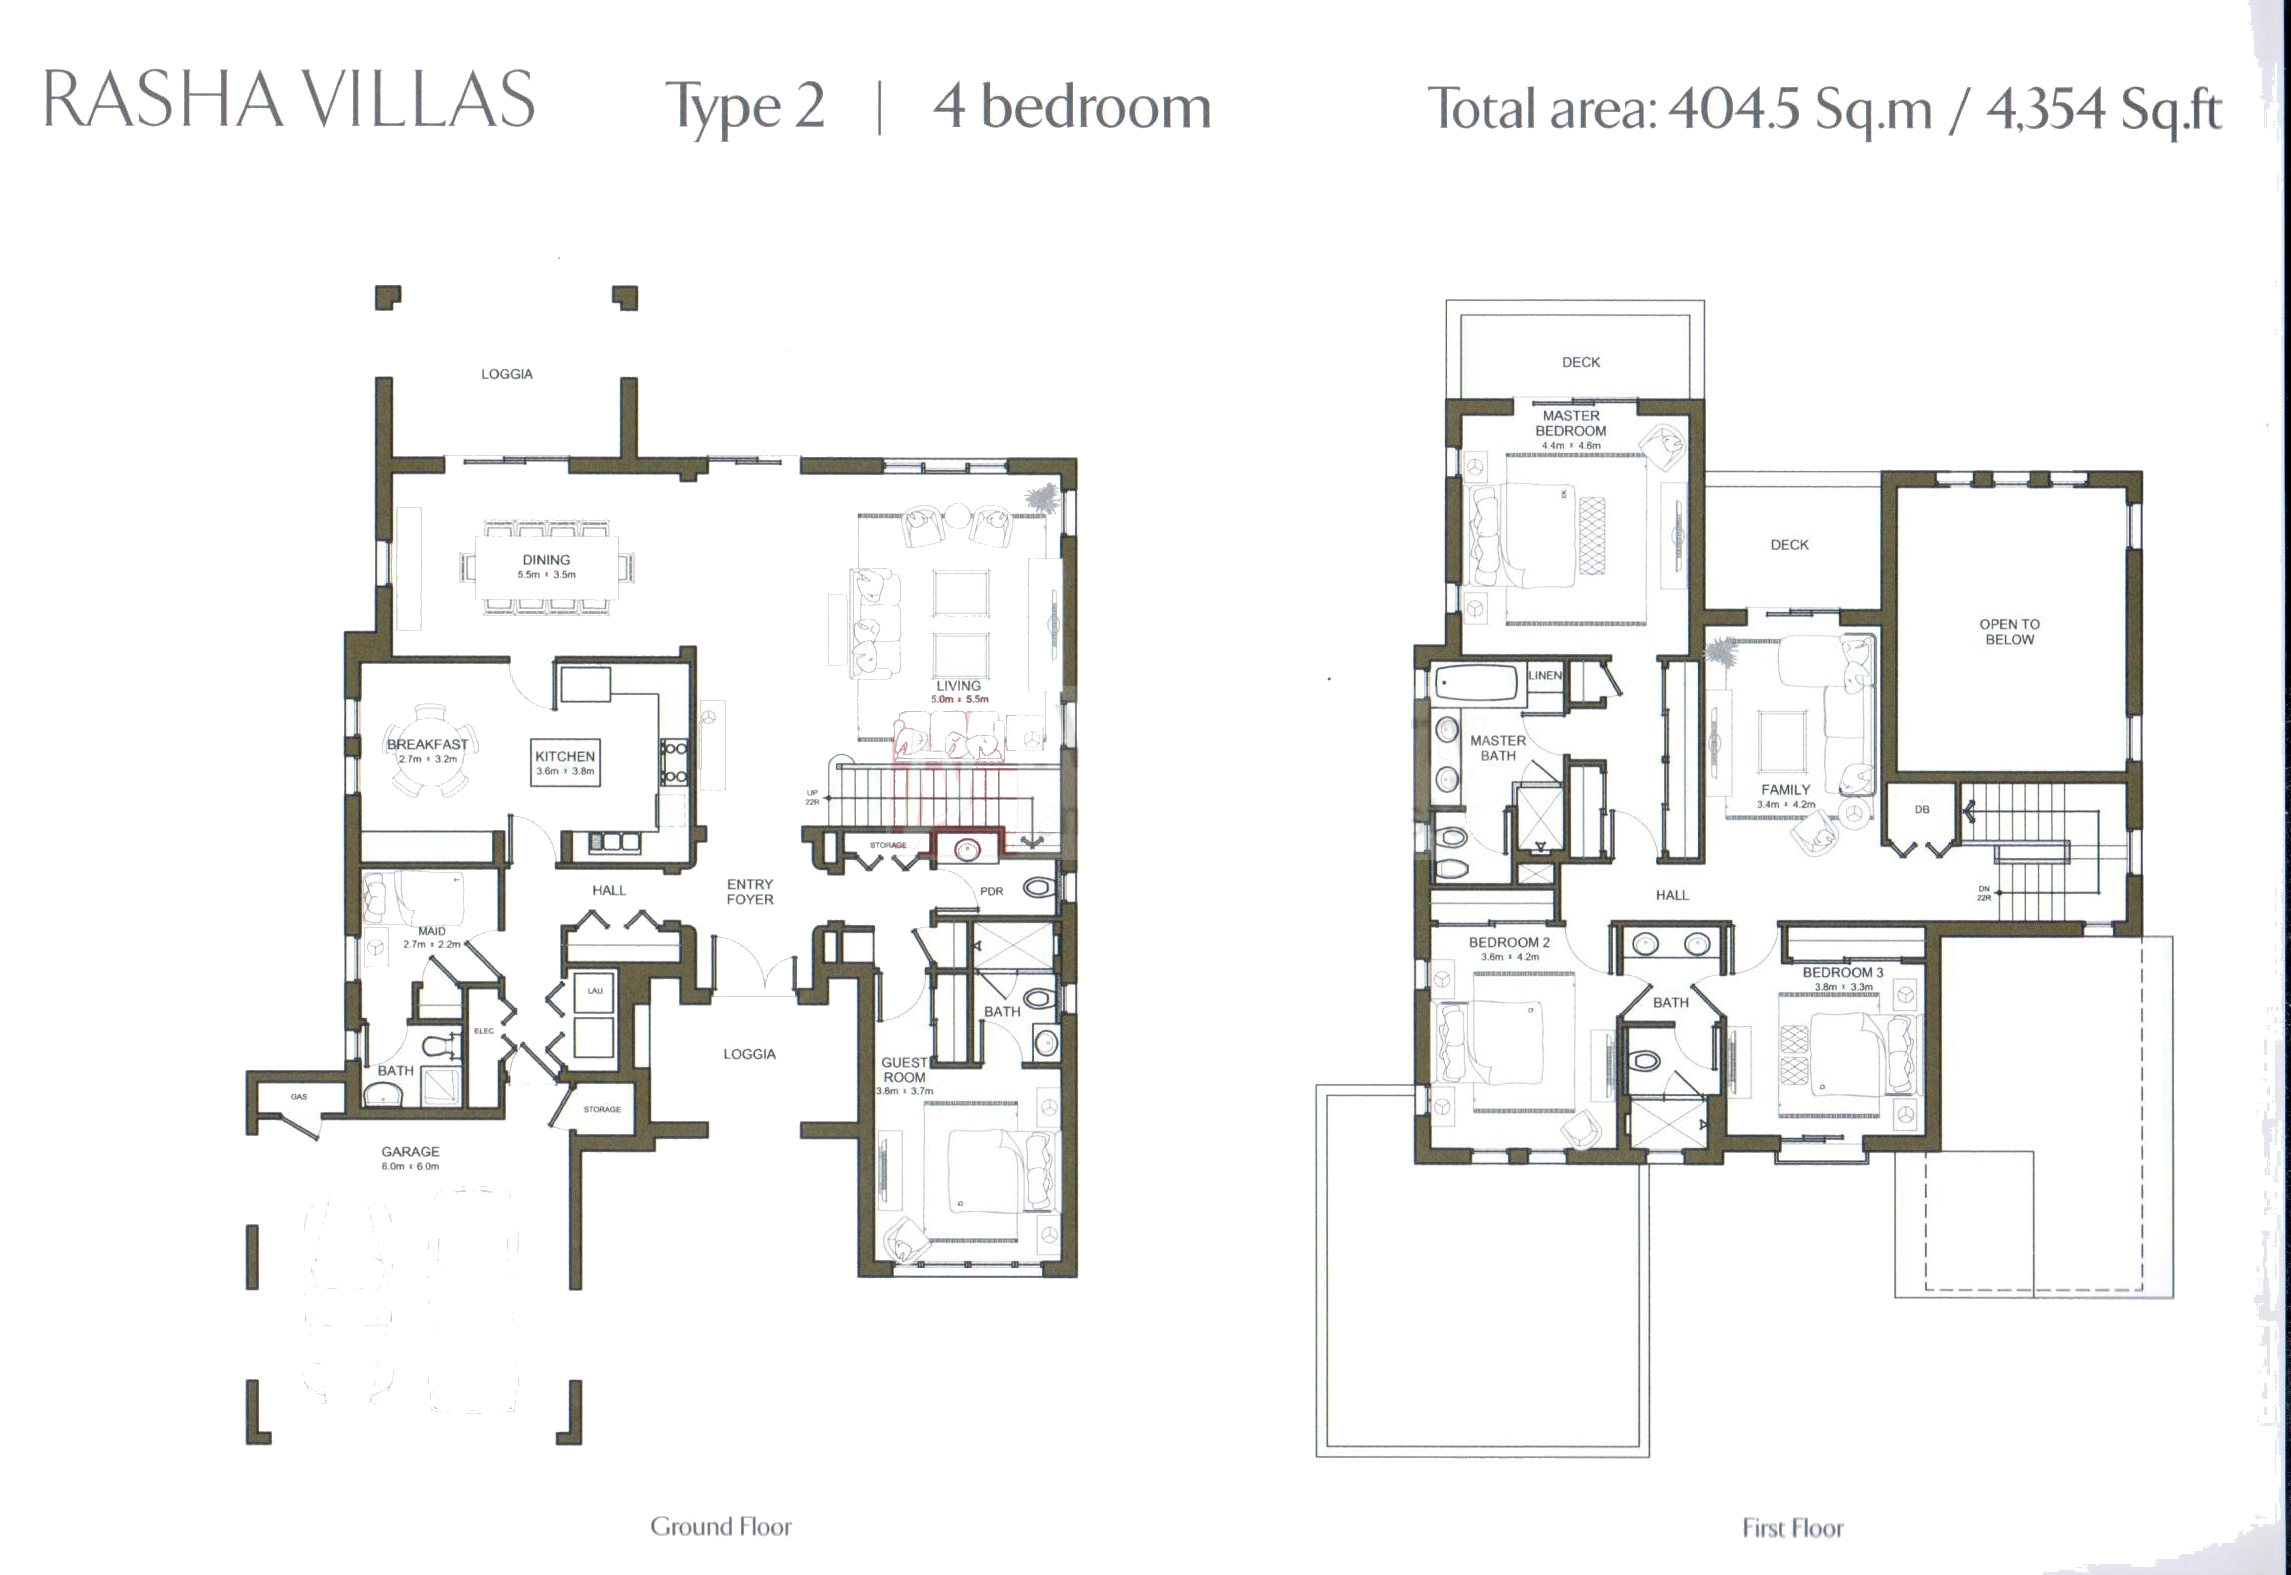 Al rasha villa floor plans arabian ranches dubai for Plan villa r 2